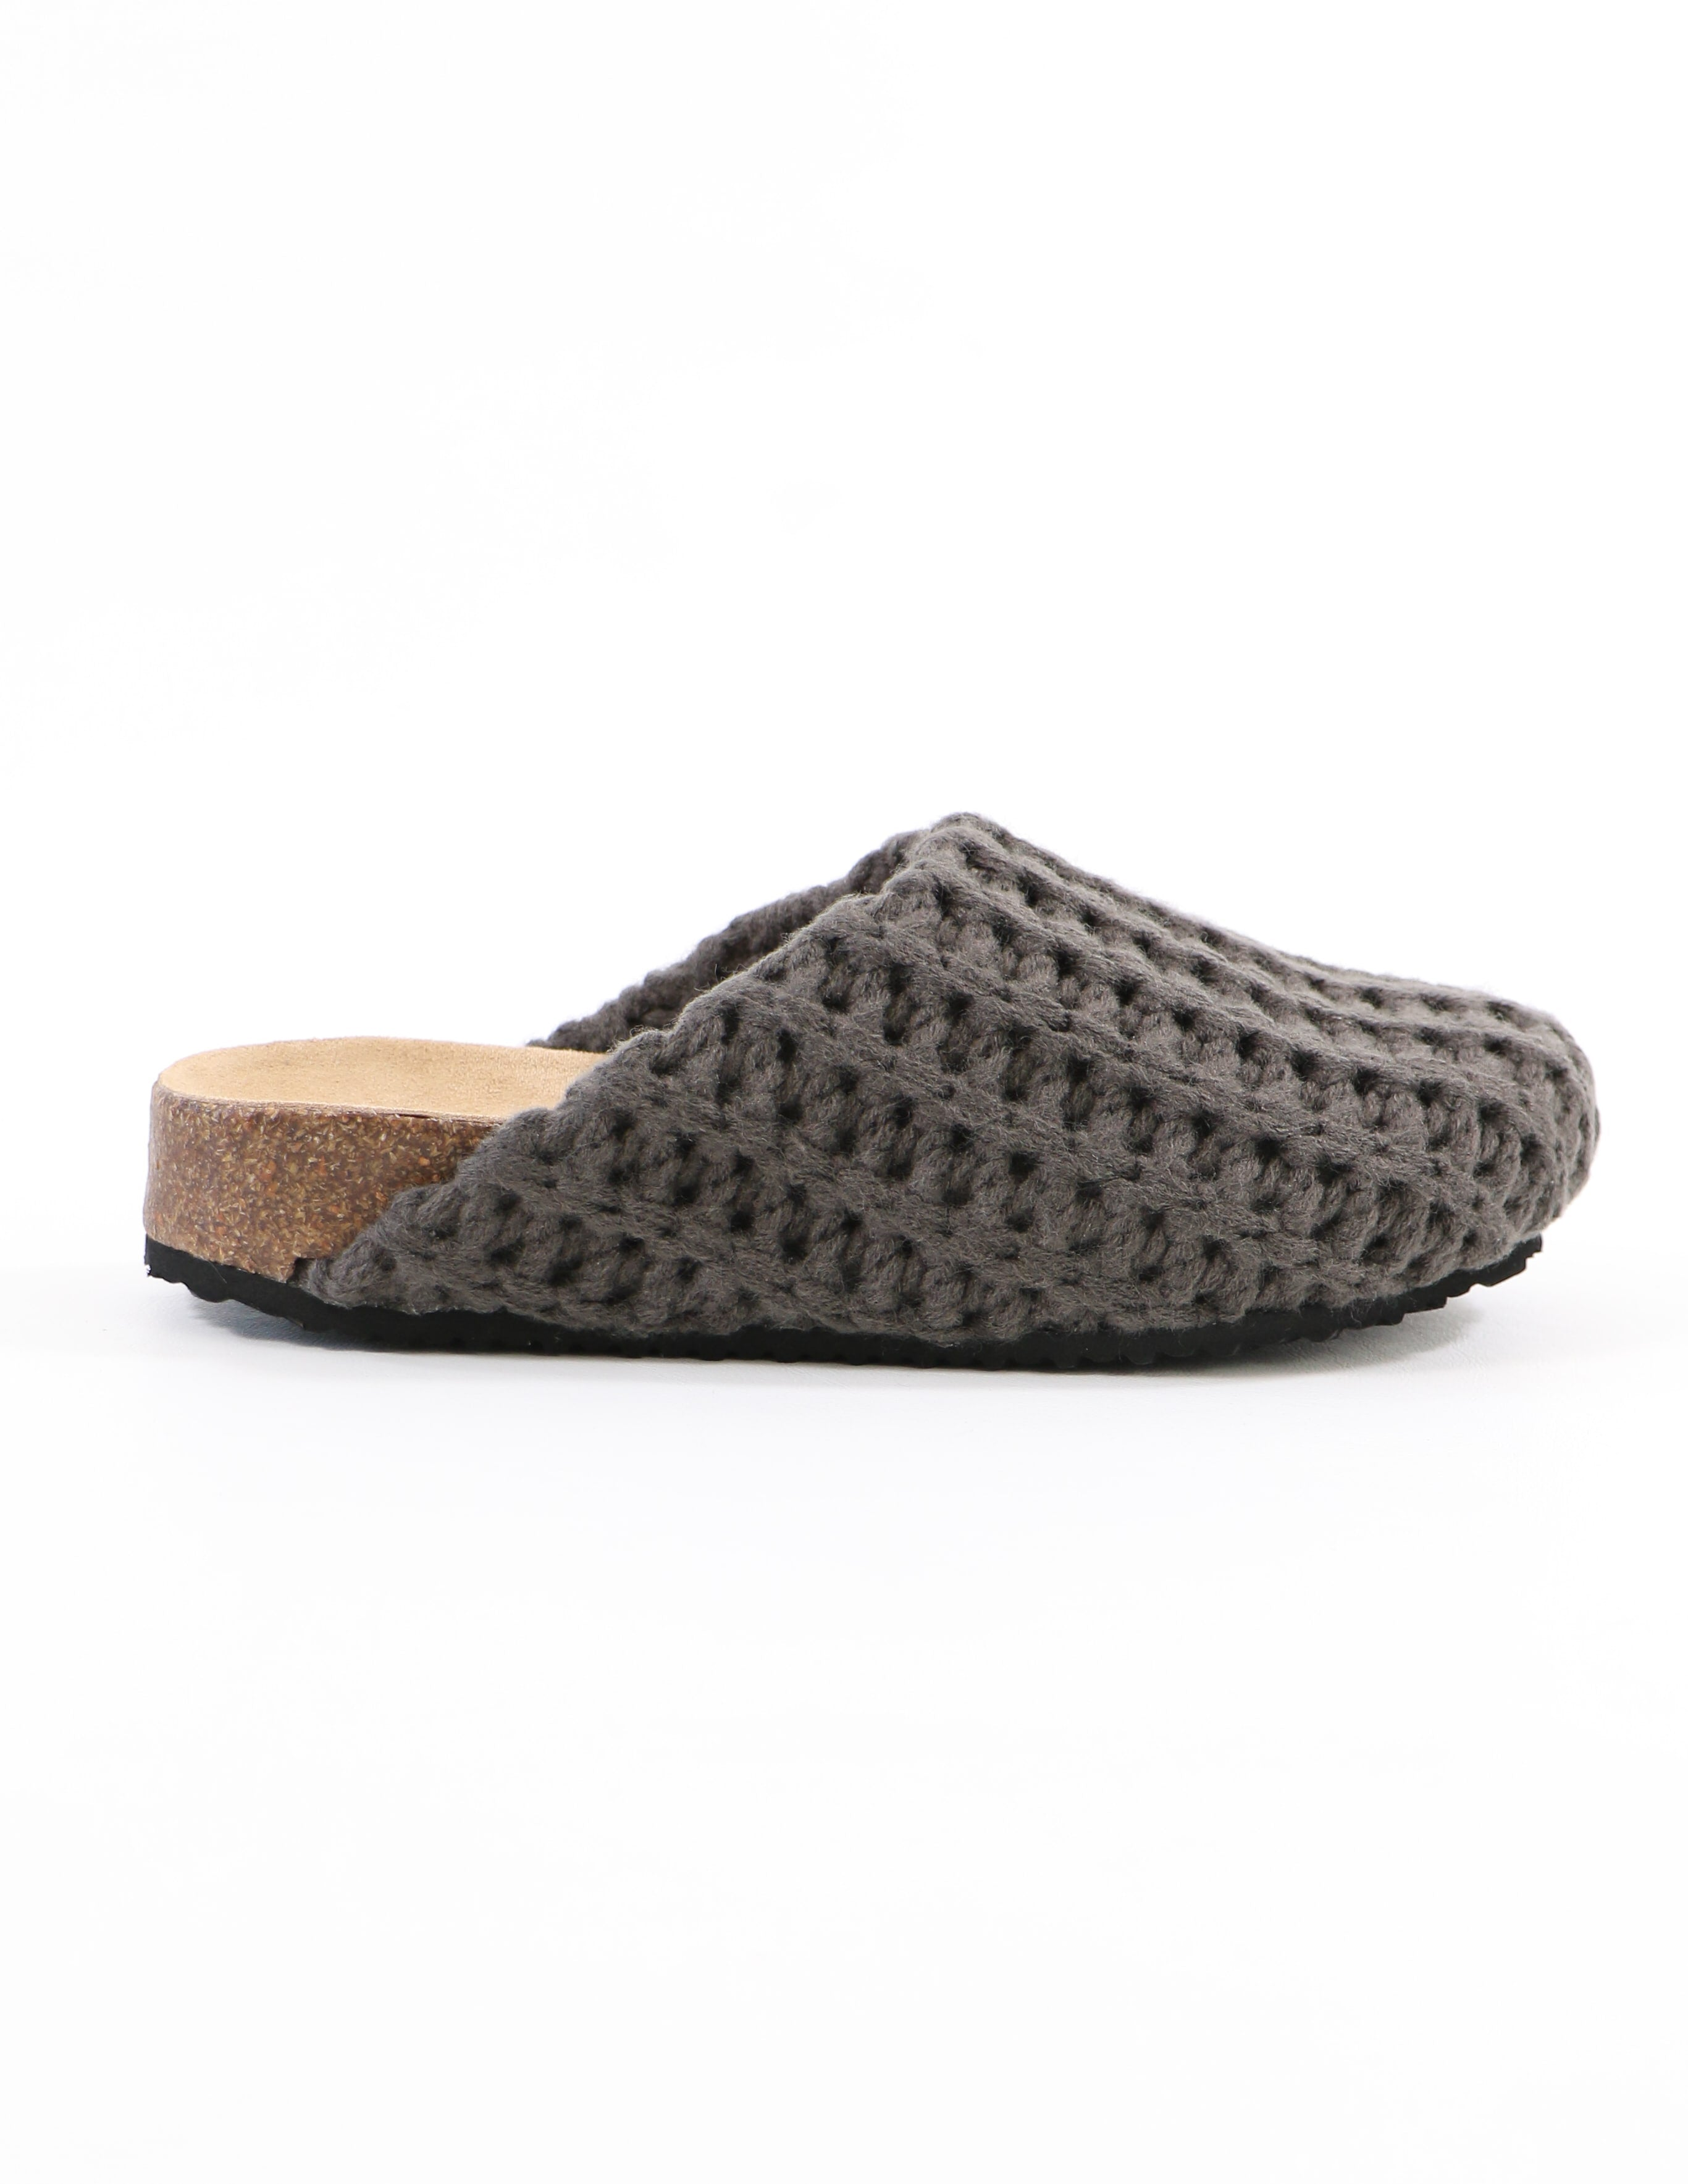 steve madden in the knit of time grey clog